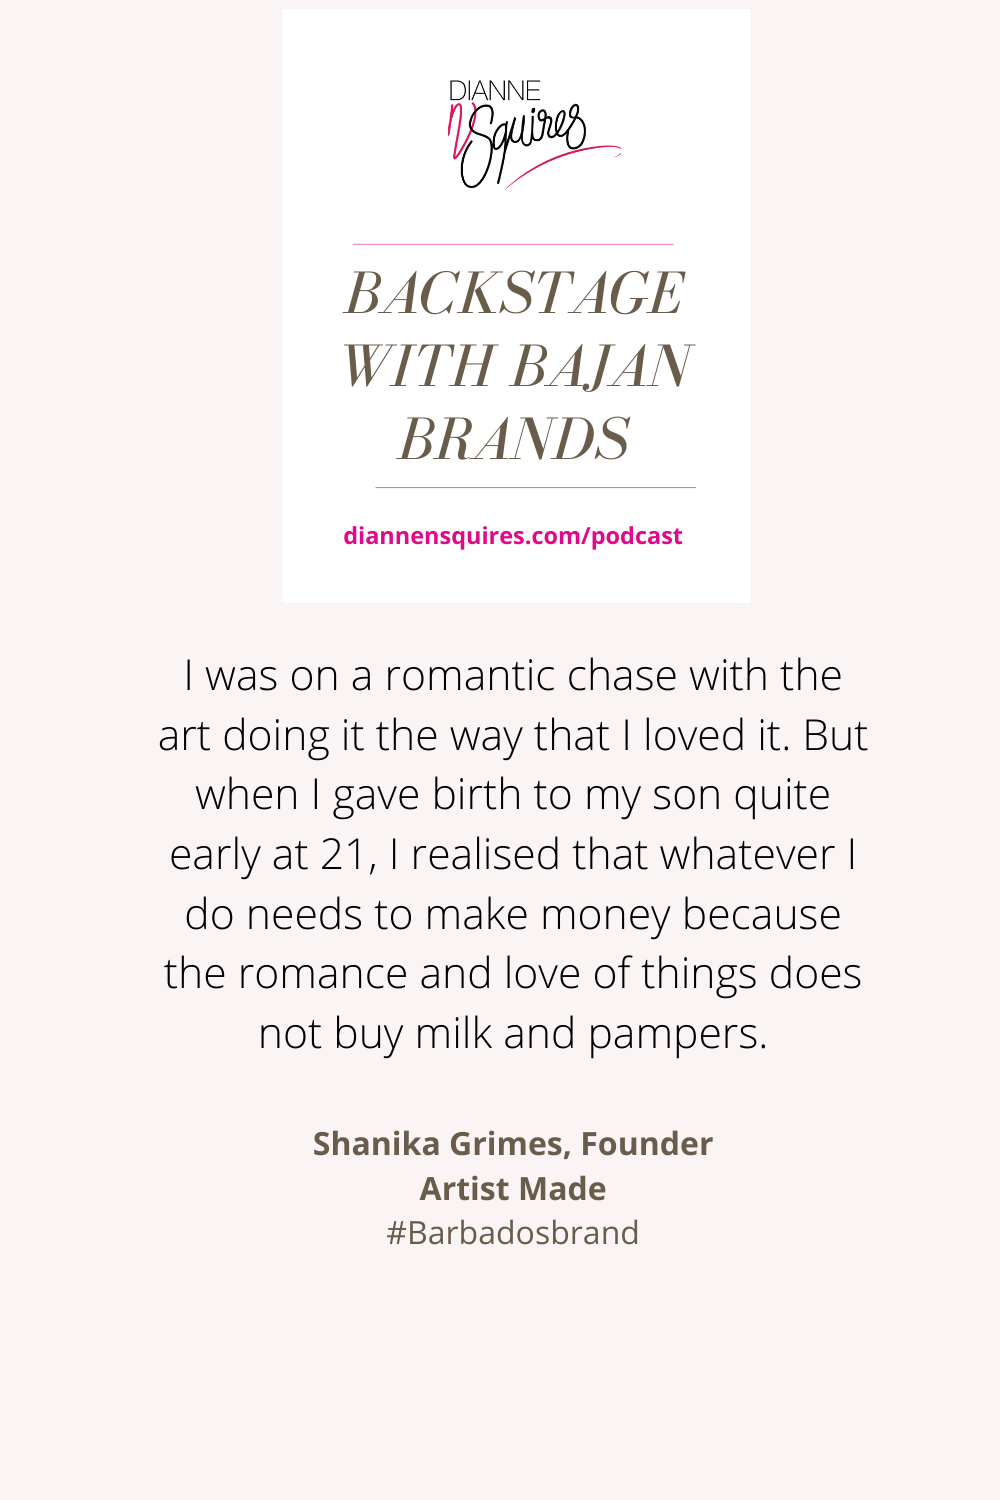 Quote from Shanika Grimes, Founder Artist Made